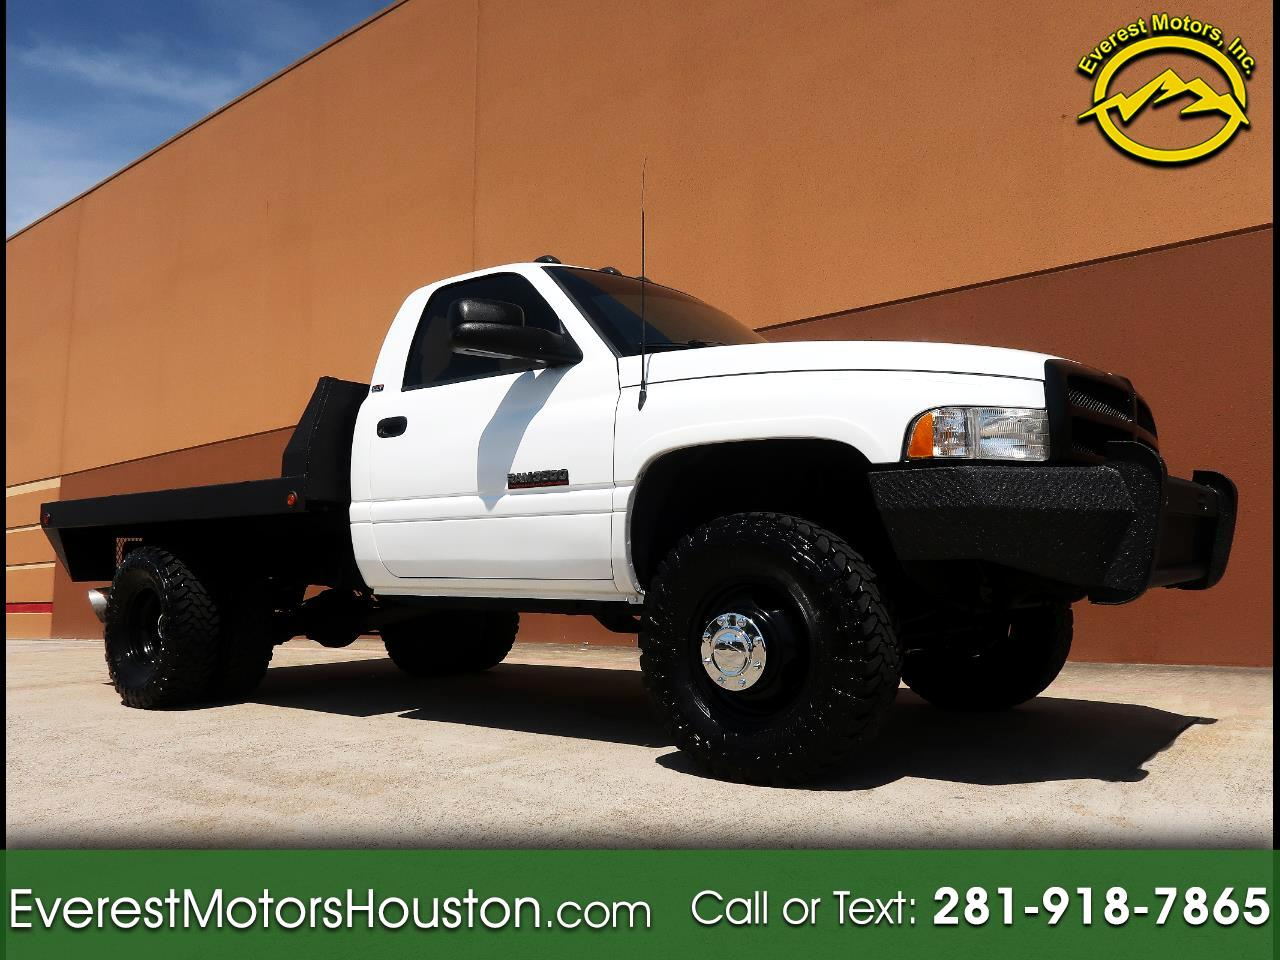 1998 Dodge Ram 3500 SLT LARAMIE CHASSIS AND CAB LONG BED 2WD FLAT BED